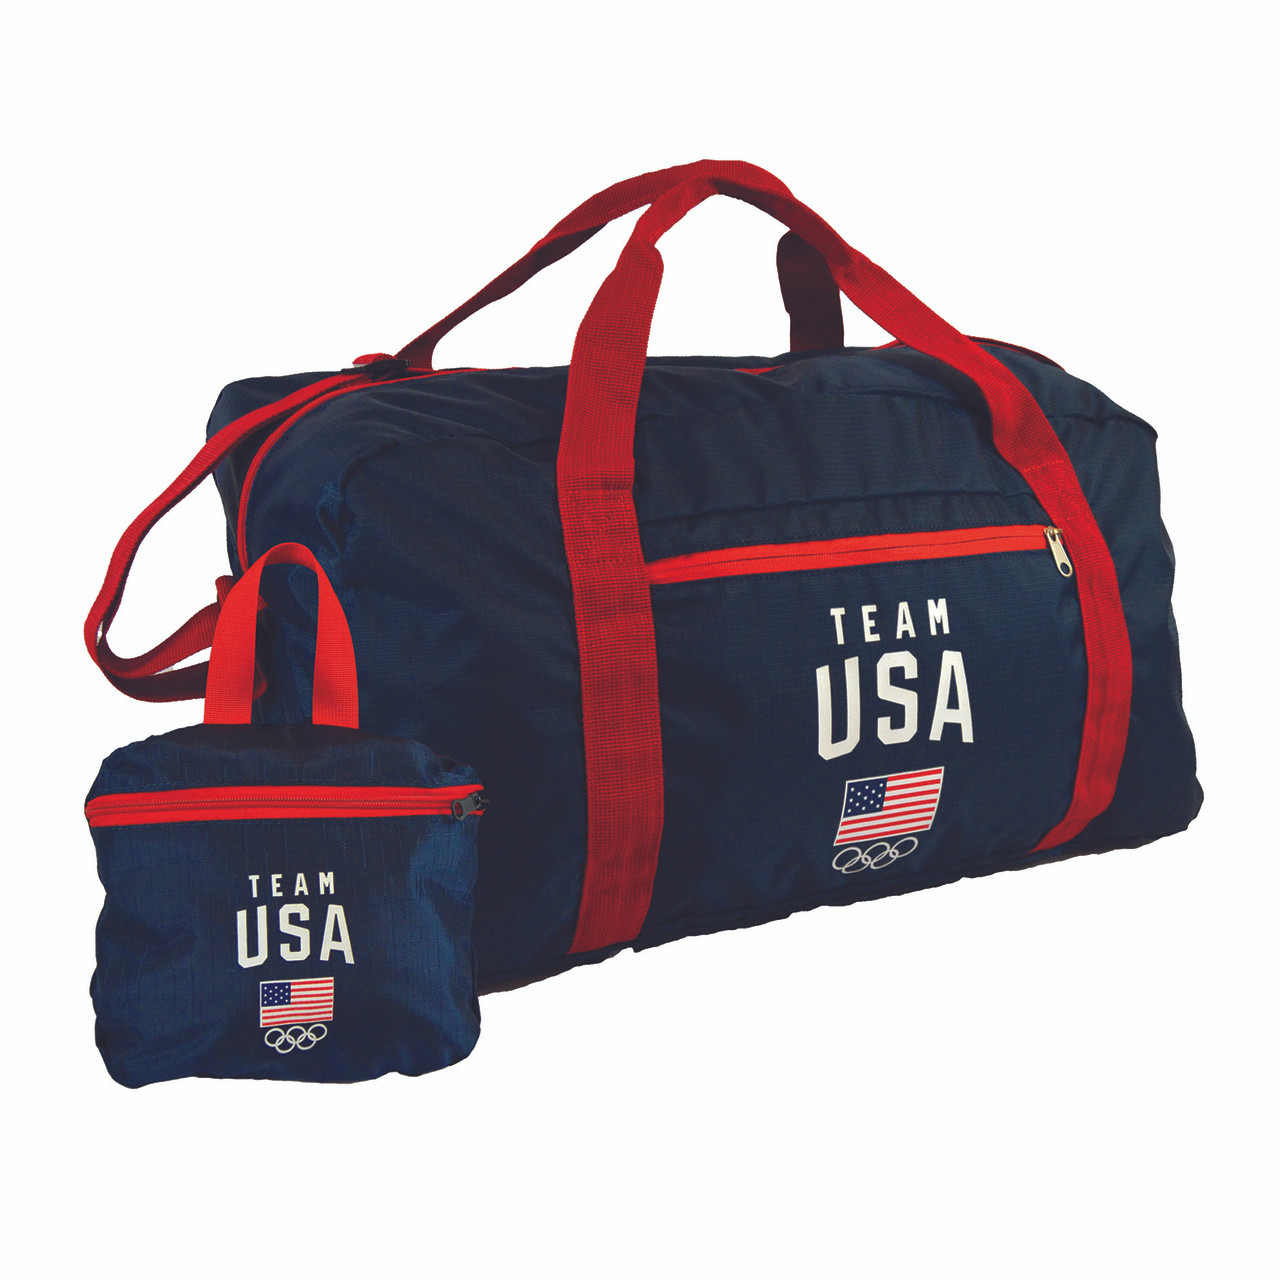 11684e6a33e0 Team USA Pouch Duffel Bag. Loading zoom